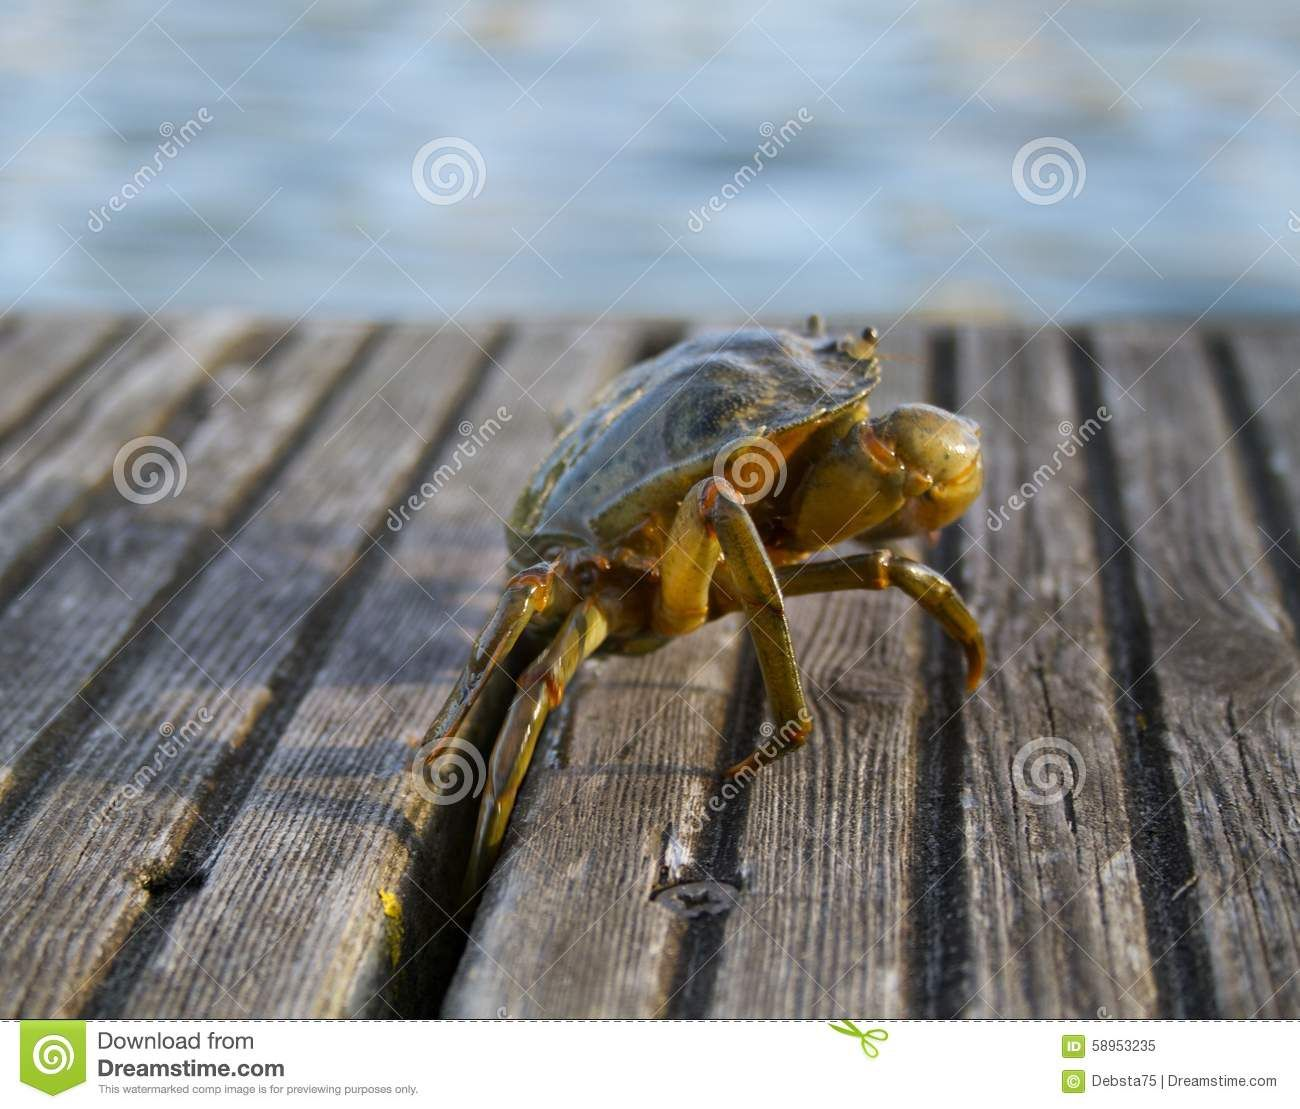 Weymouth Crab - Download From Over 35 Million High Quality Stock Photos, Images, Vectors. Sign up for FREE today. Image: 58953235